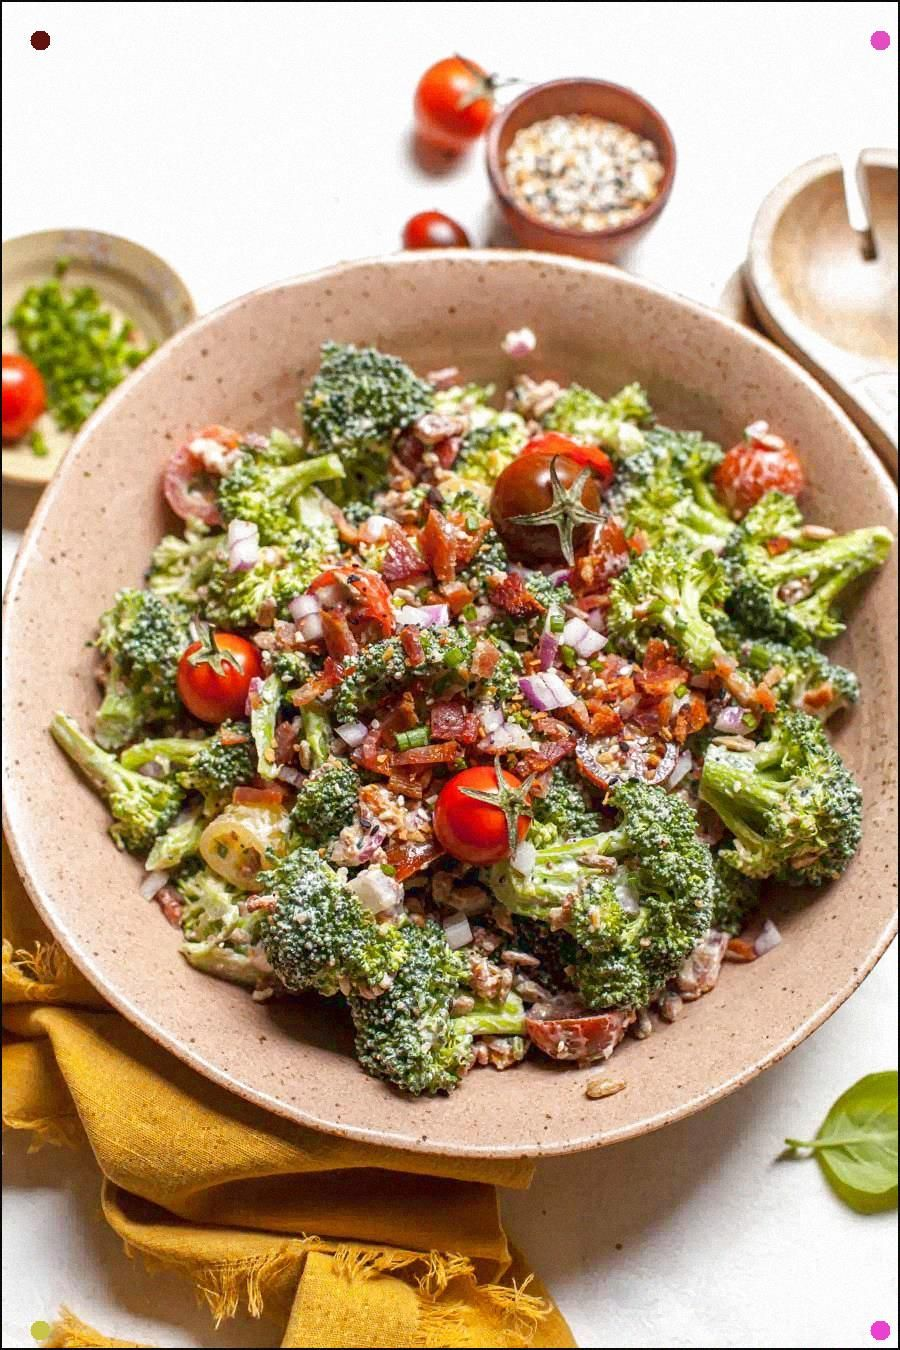 Broccoli salad with everything bagel spice and goat cheese